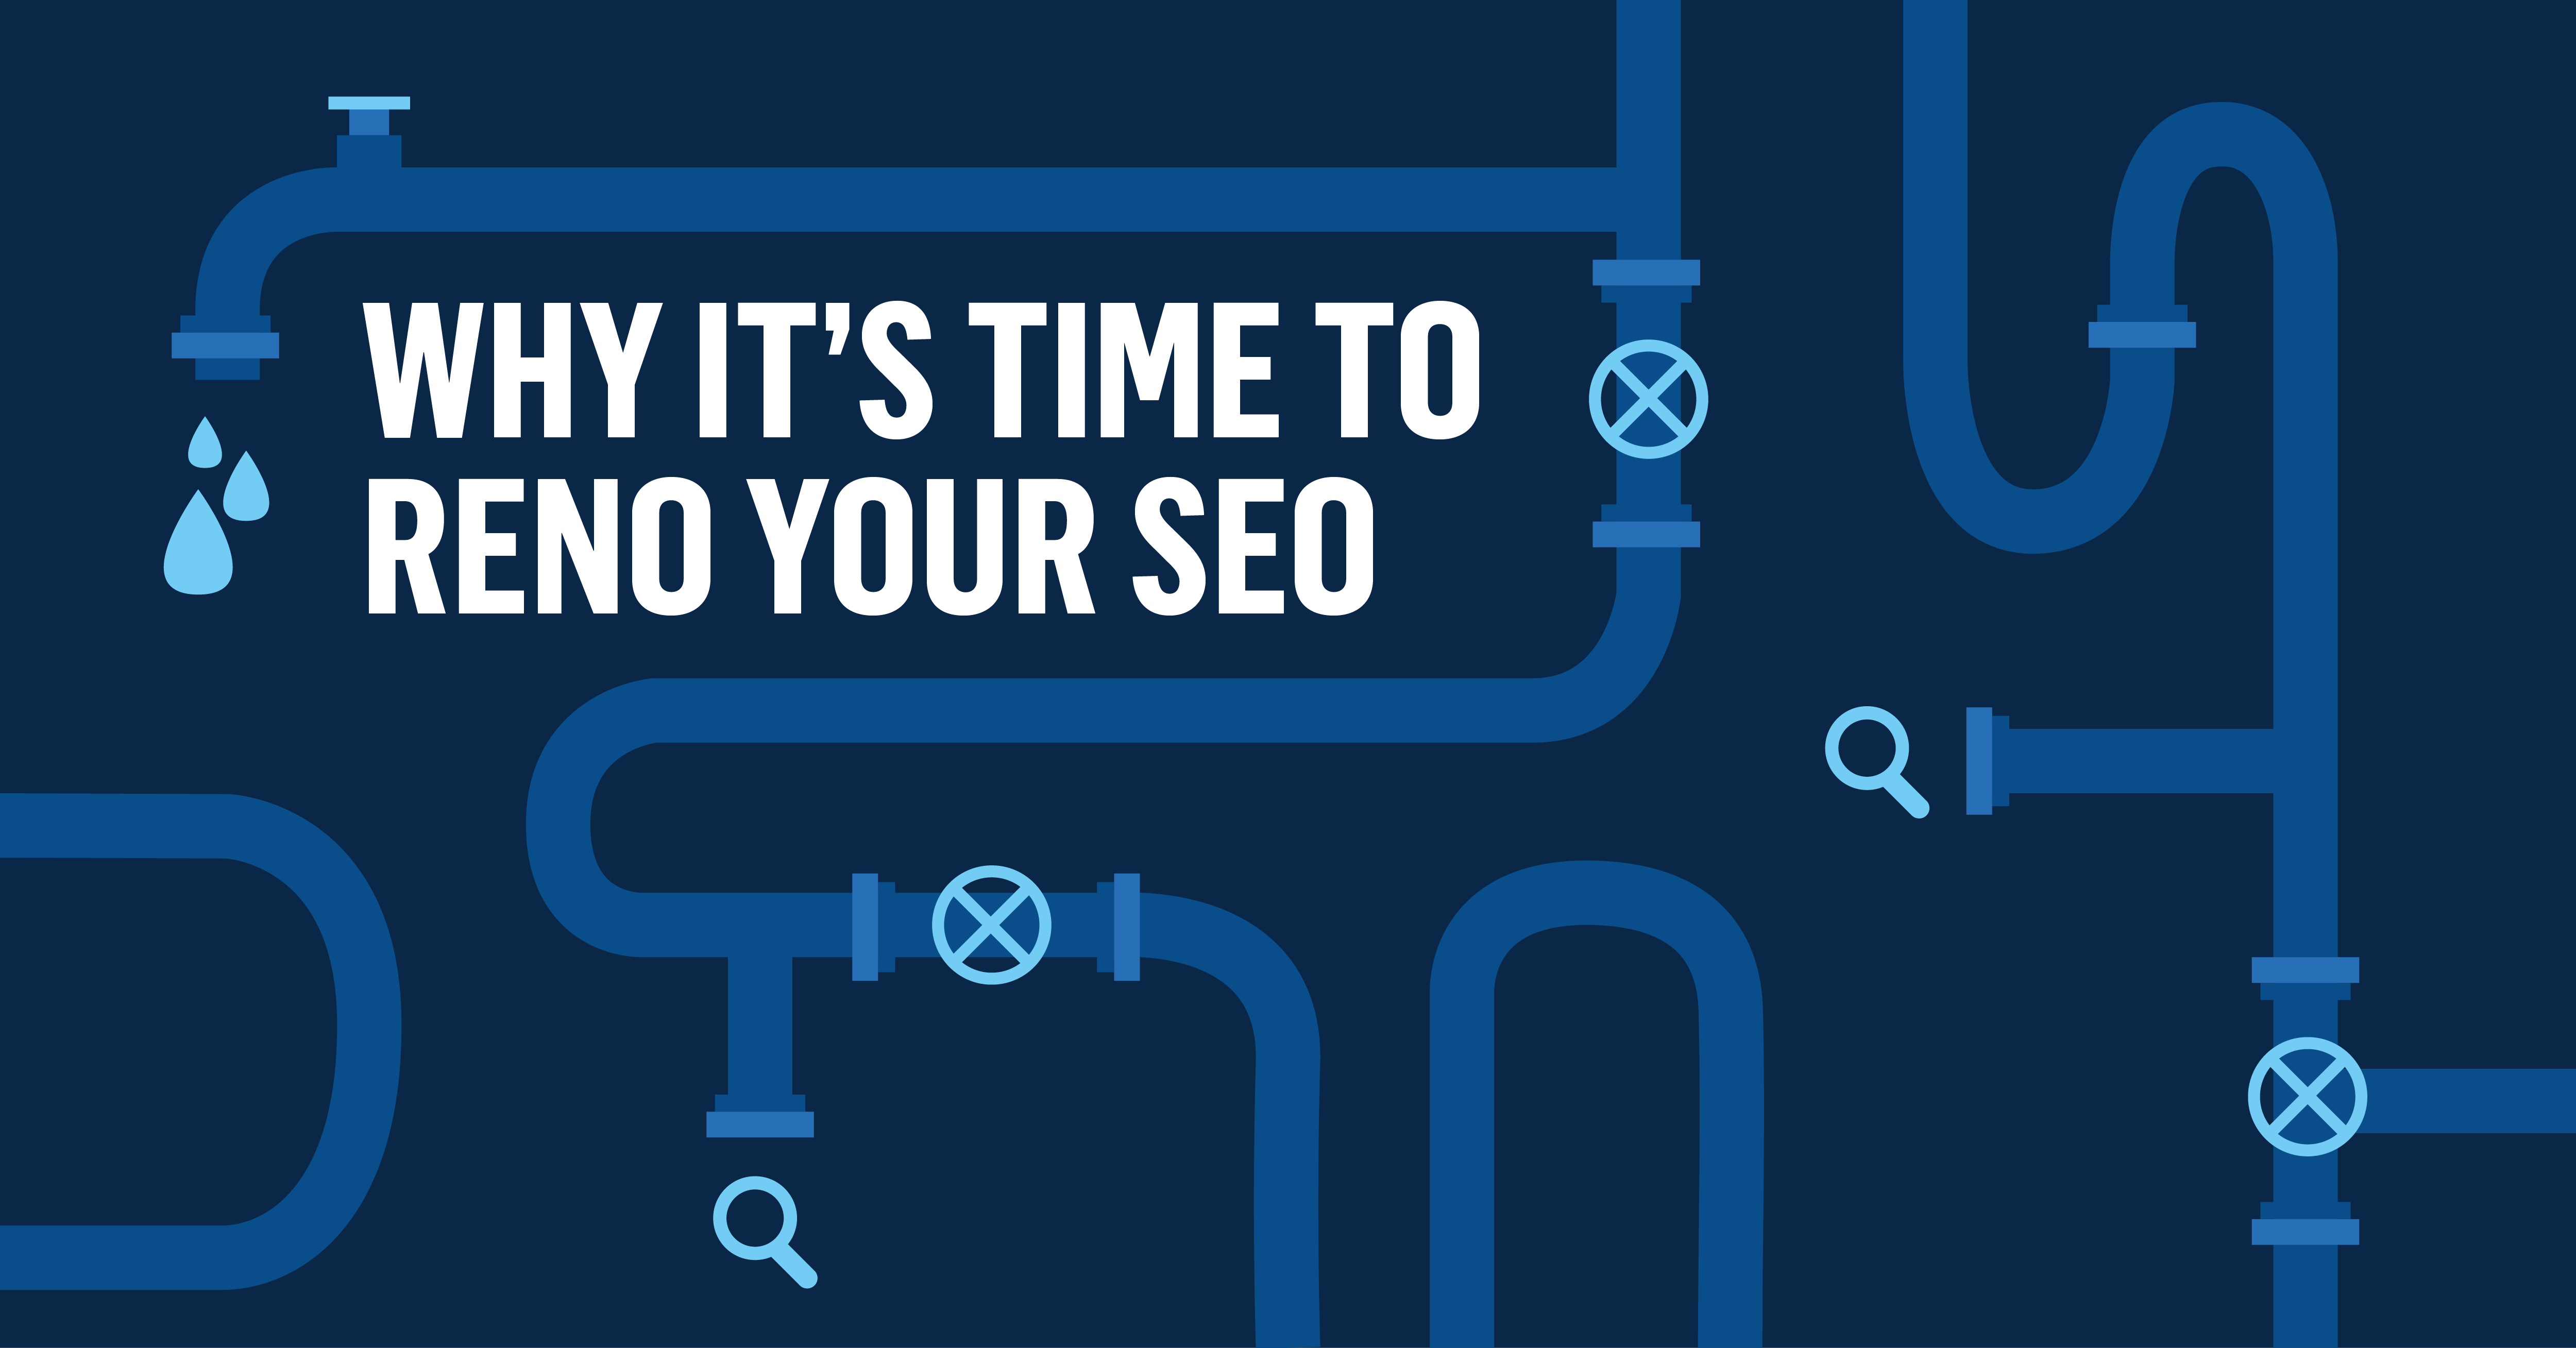 Why It's Time to Reno Your SEO